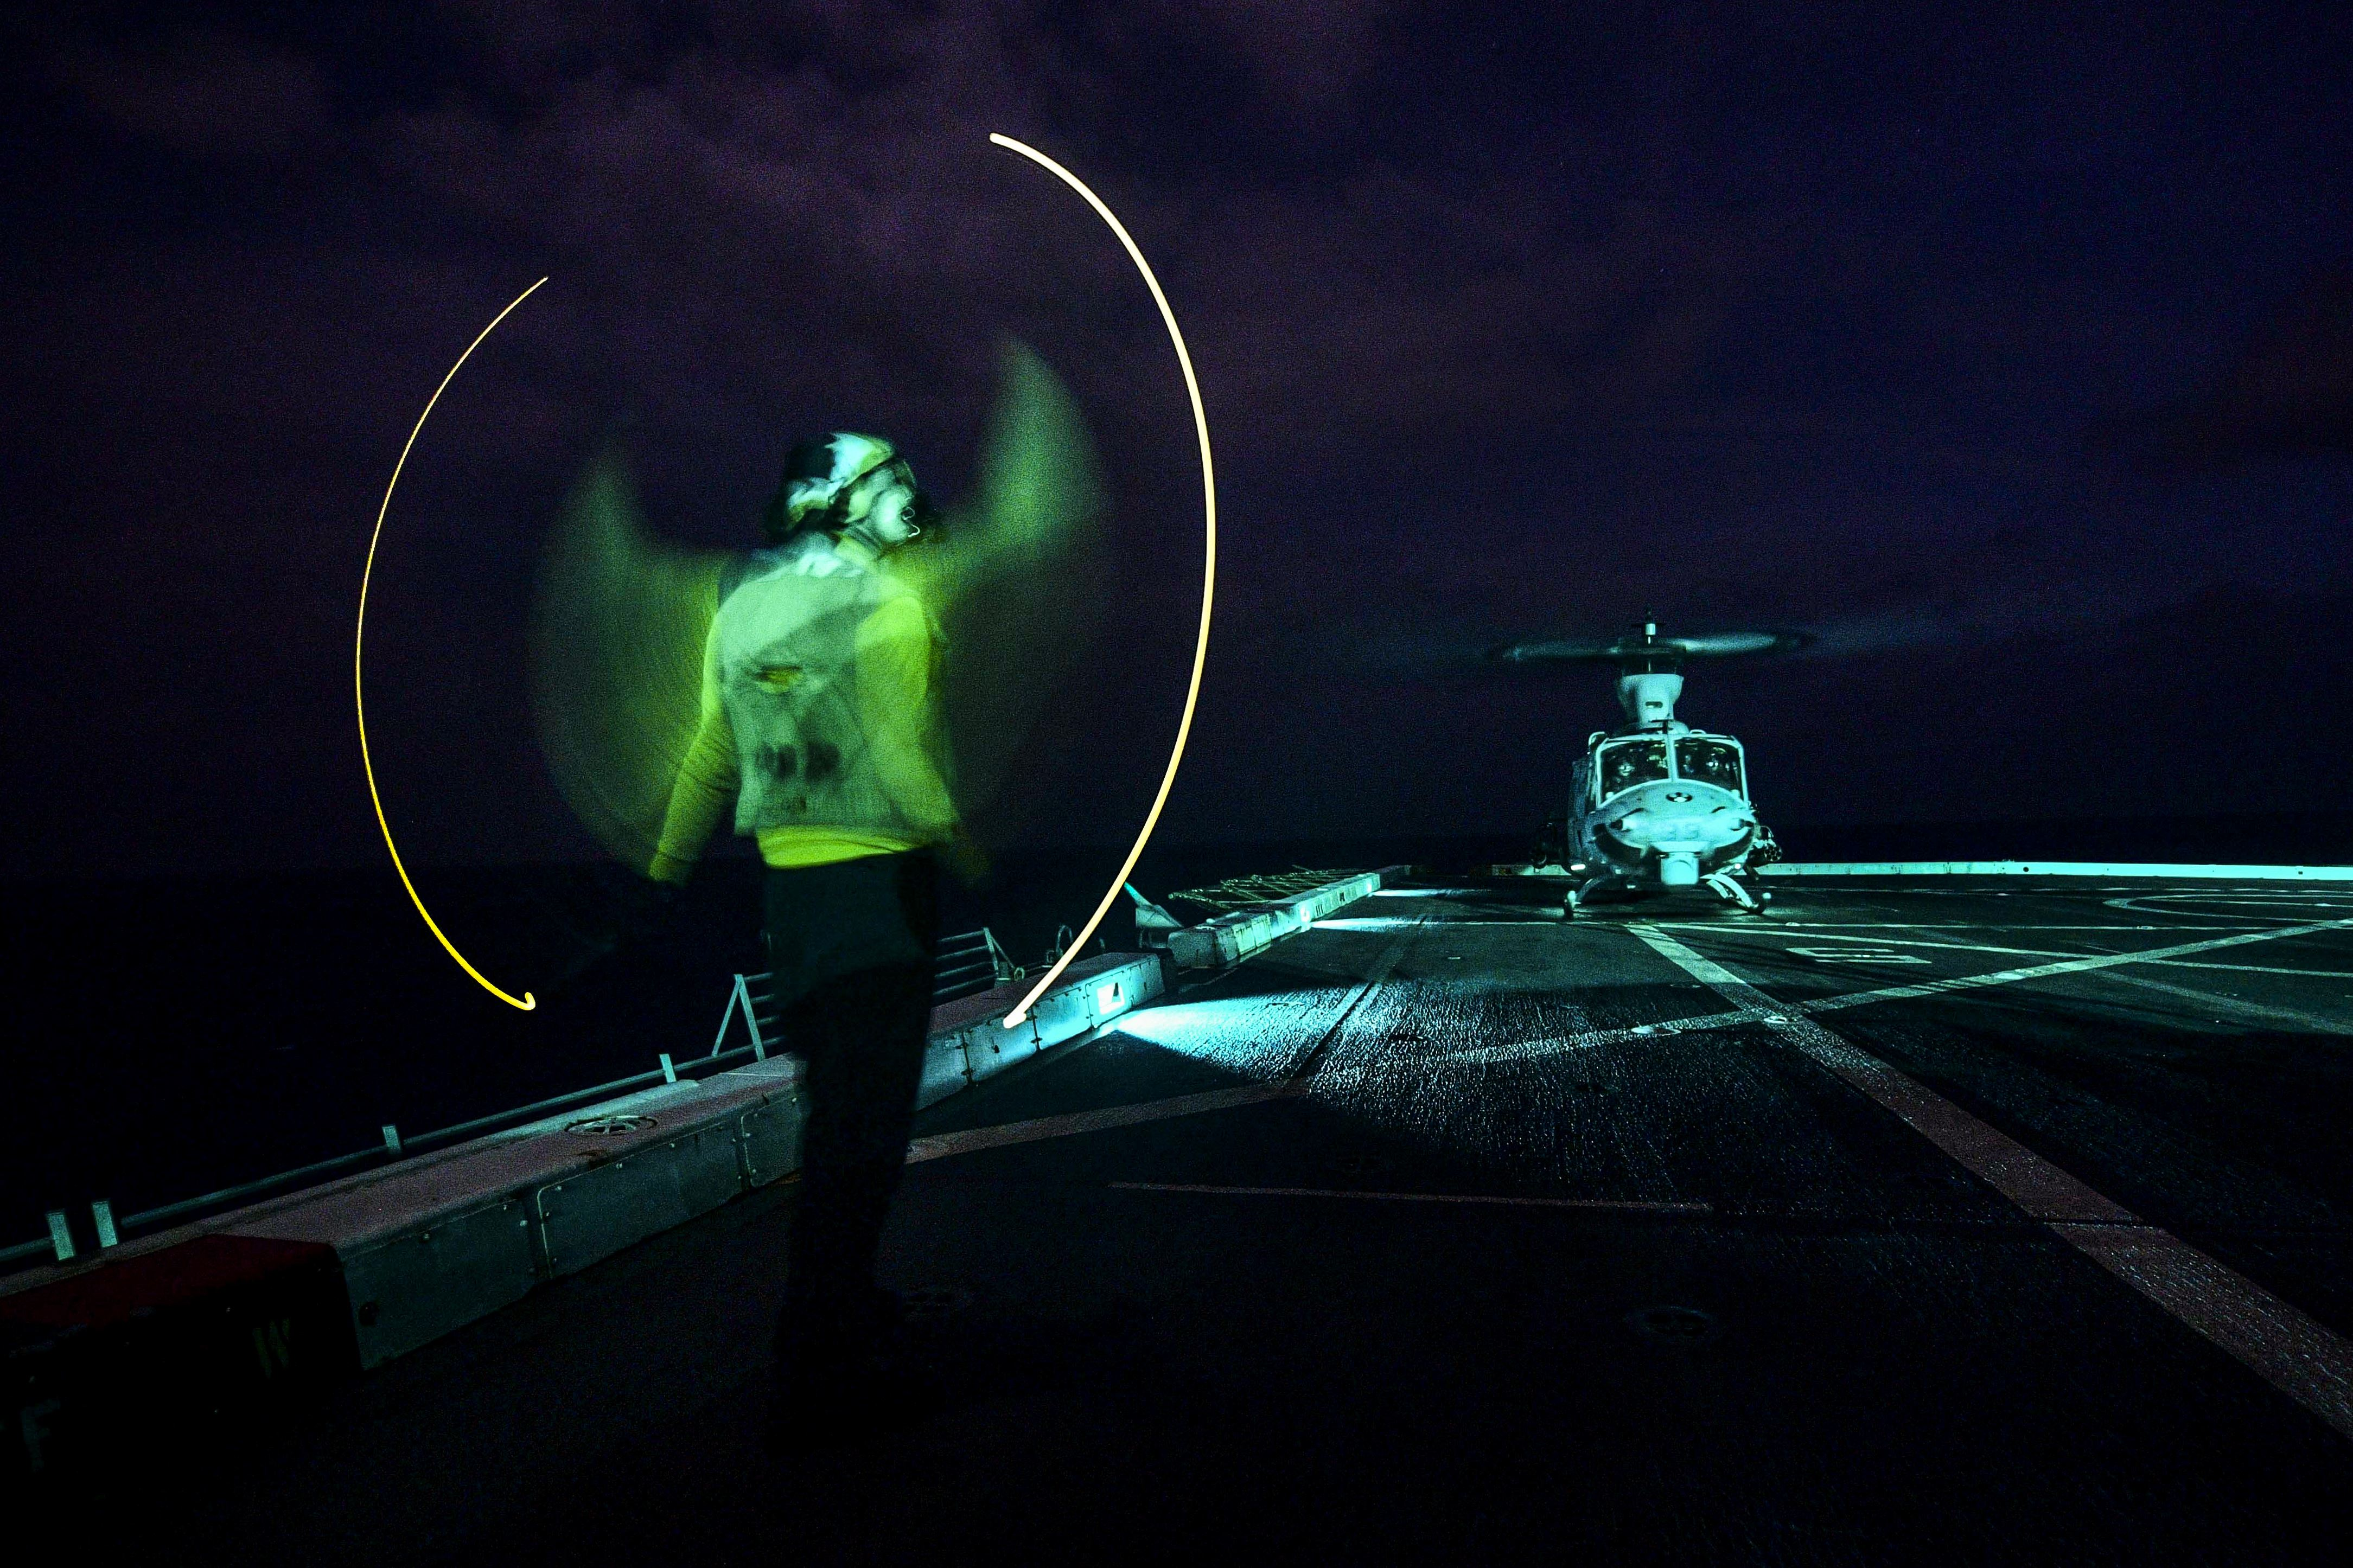 Navy Seaman Ryan Sharland directs a UH-1Y Venom helicopter on the flight deck of the USS San Diego in the Indian Ocean, Dec. 28, 2017. (Justin A. Schoenberger/Navy)